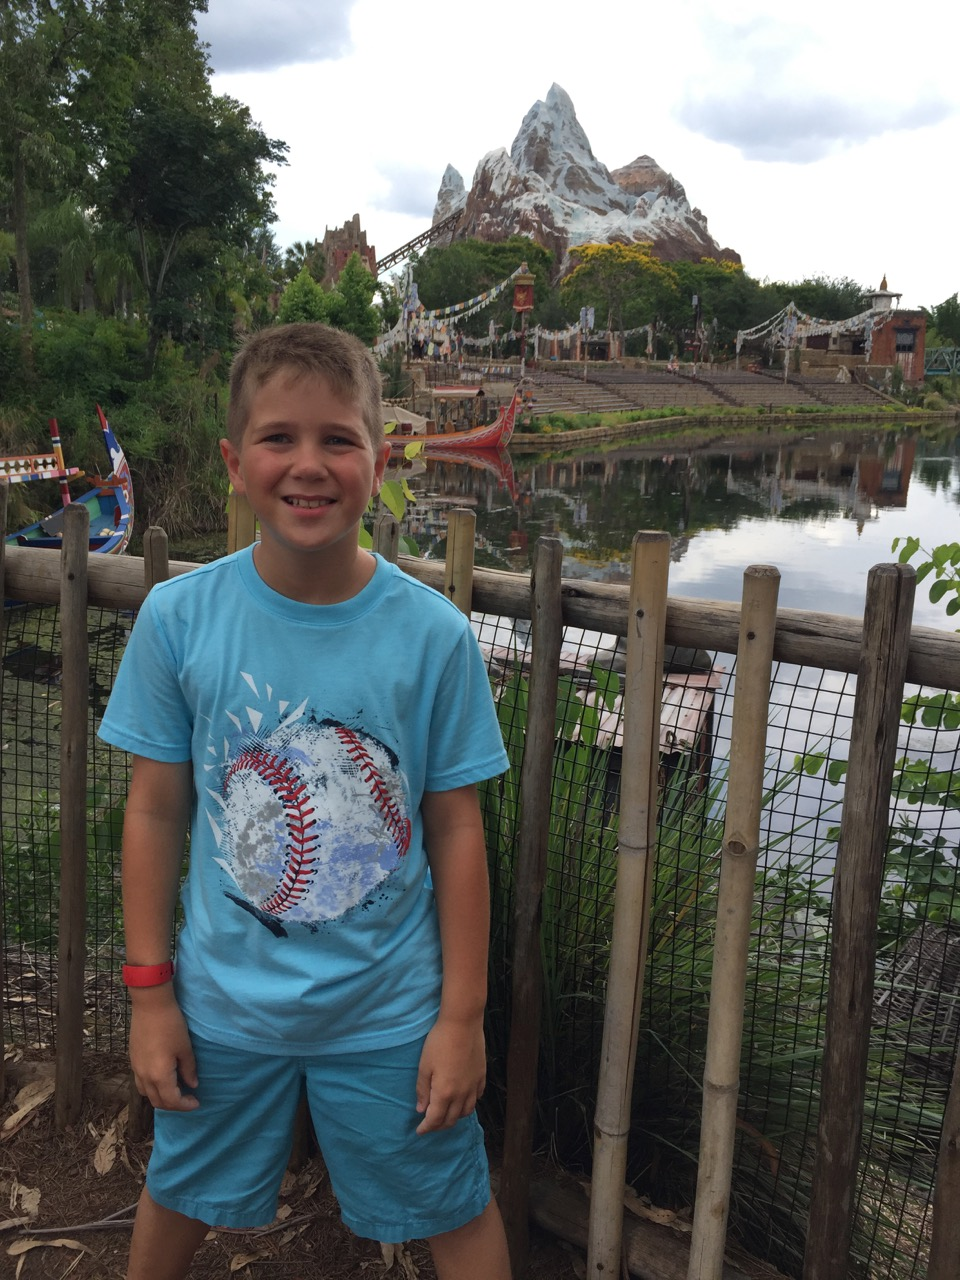 Adam at Expedition Everest